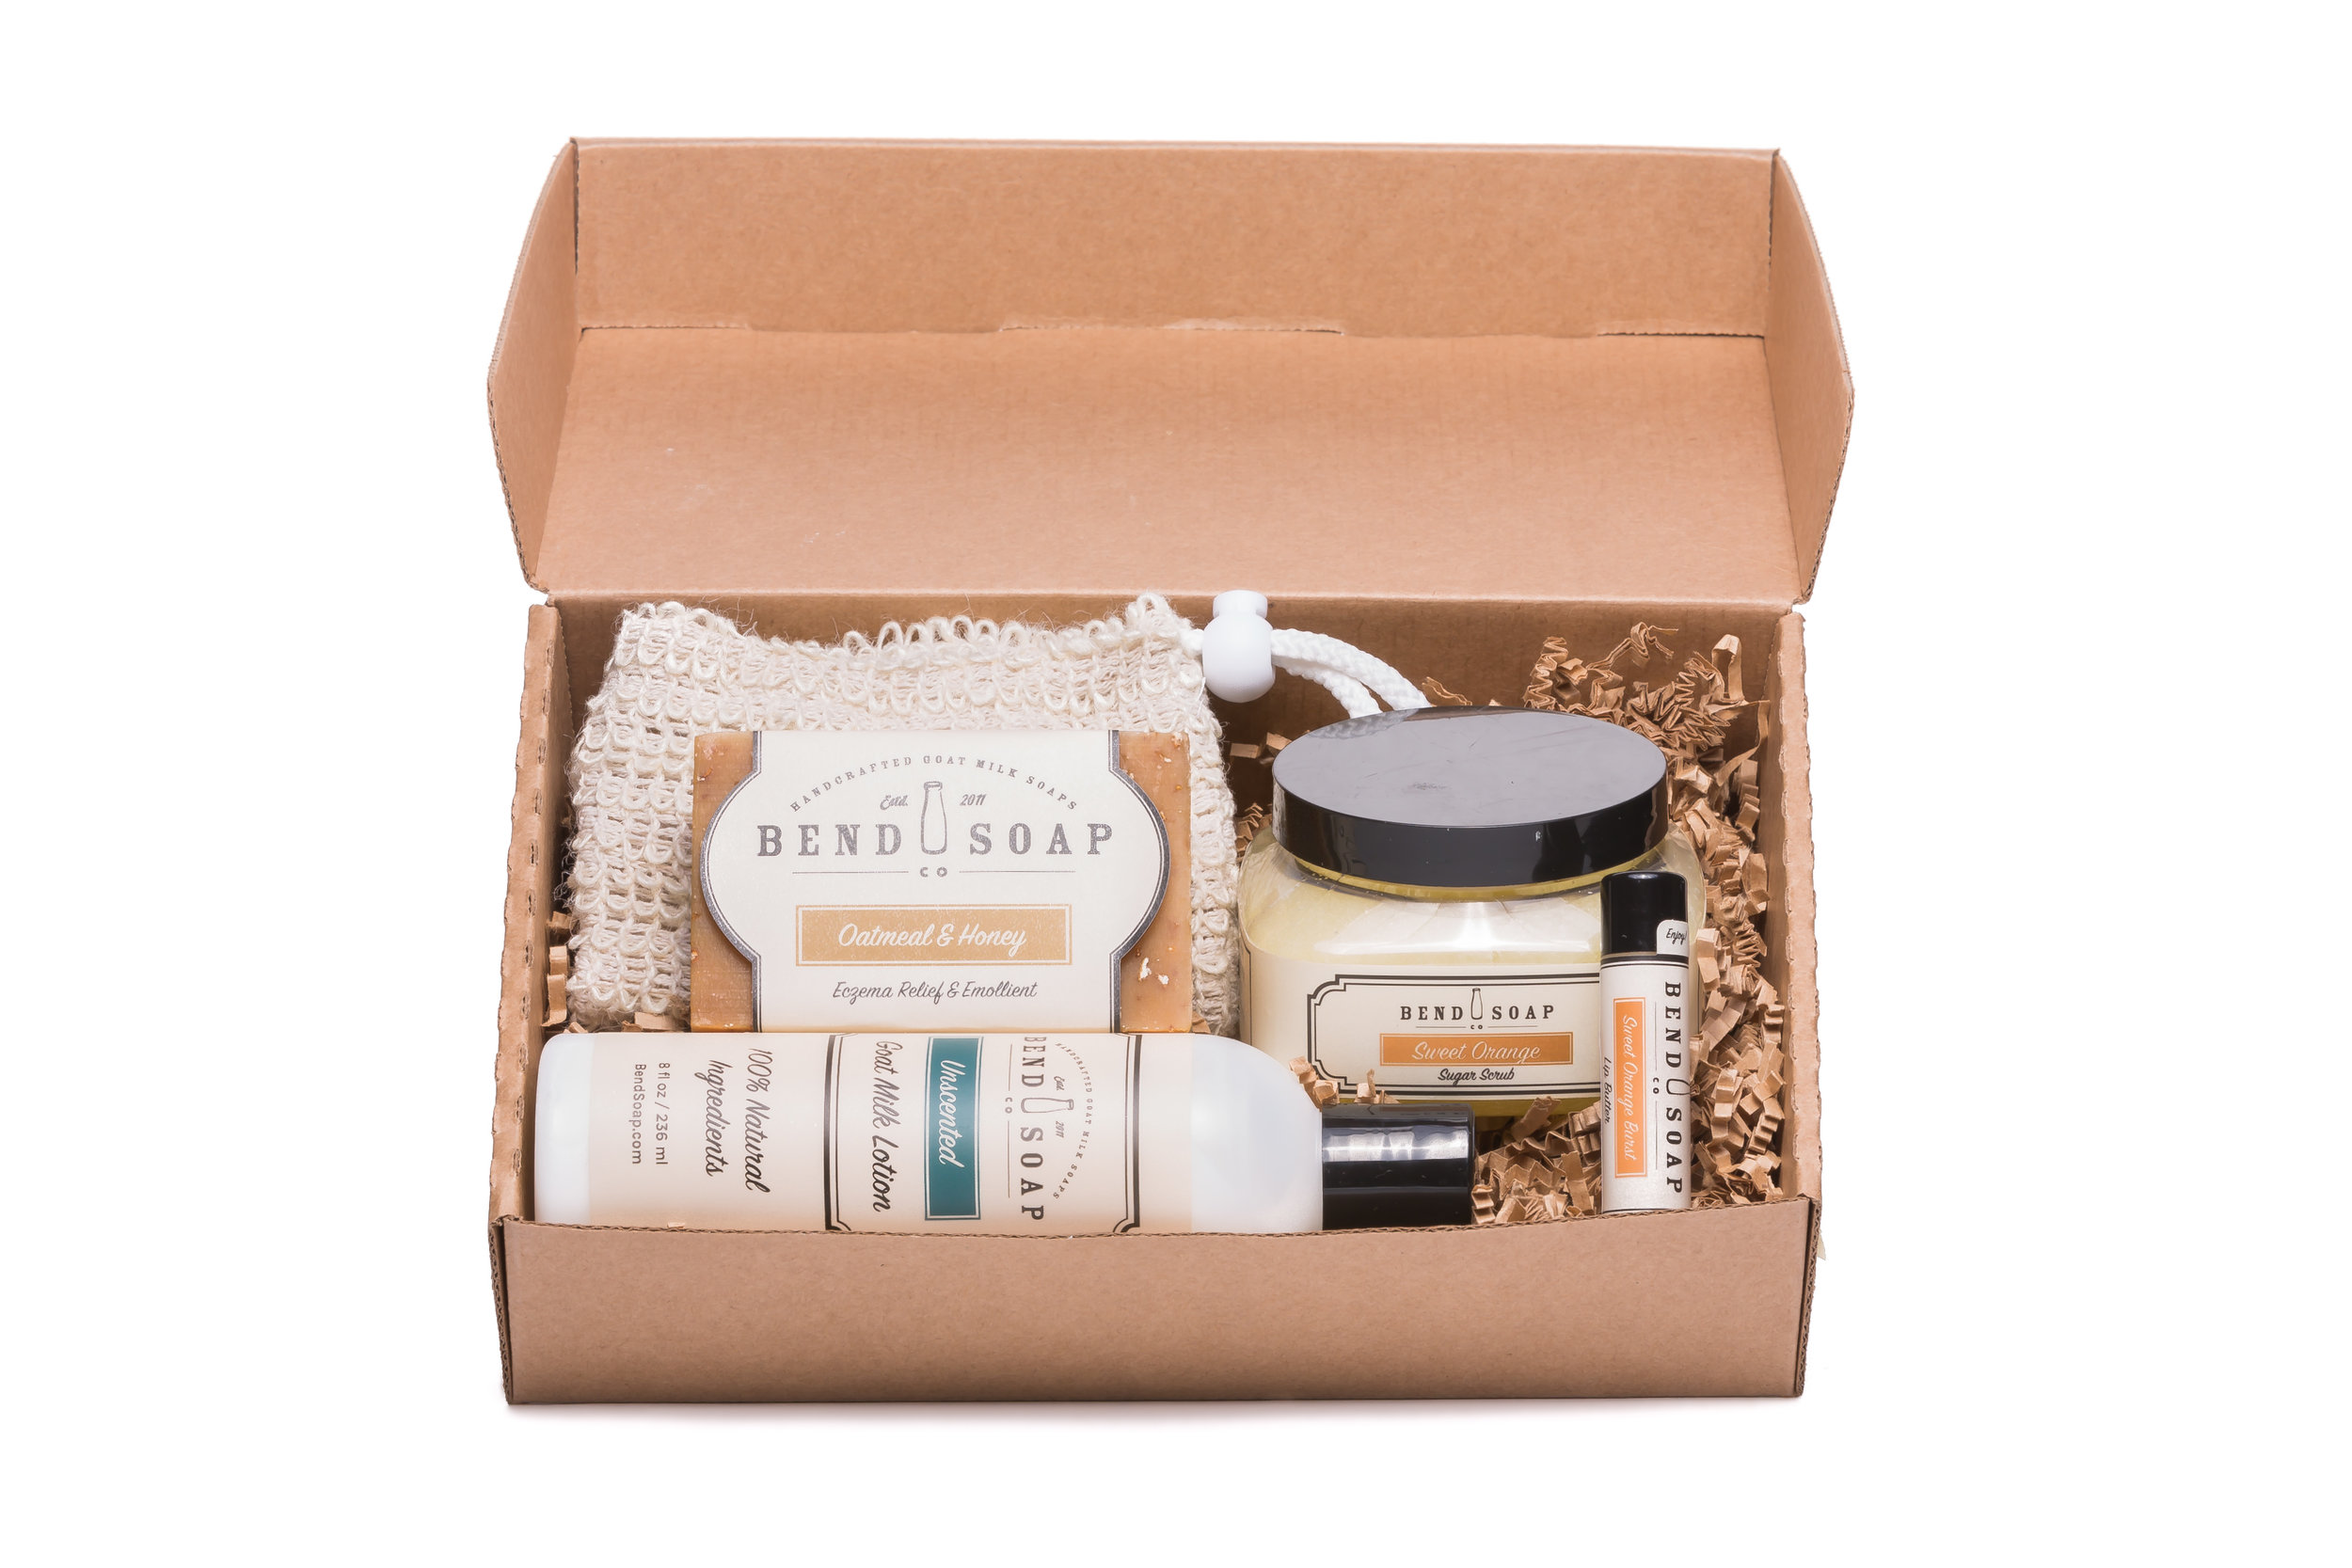 Bend Soap - Gift Box Shoot-725-Edit.jpg